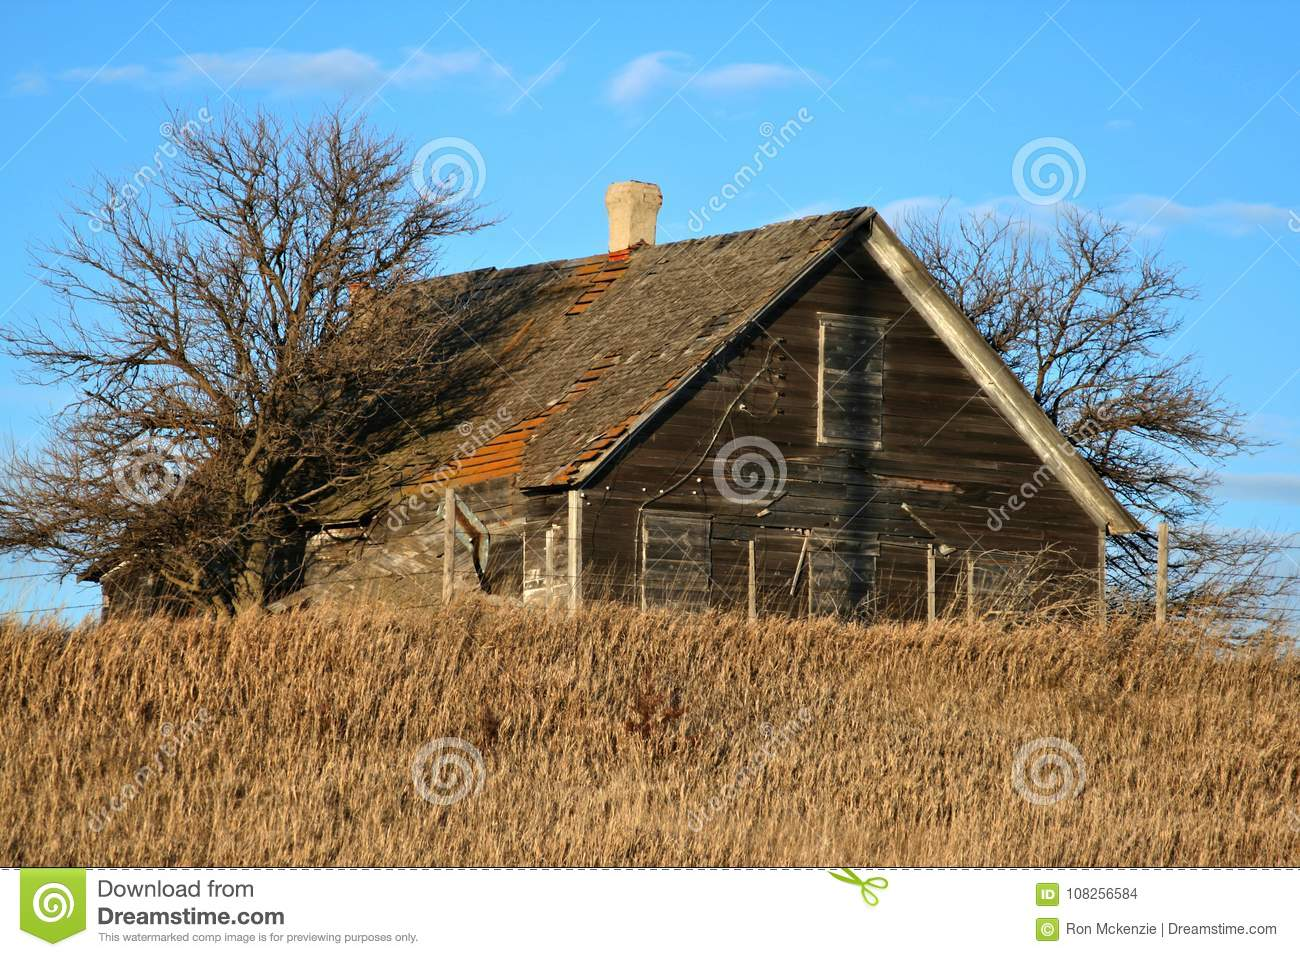 Abandoned Farm Homes That Are Neglected Stock Photo - Image